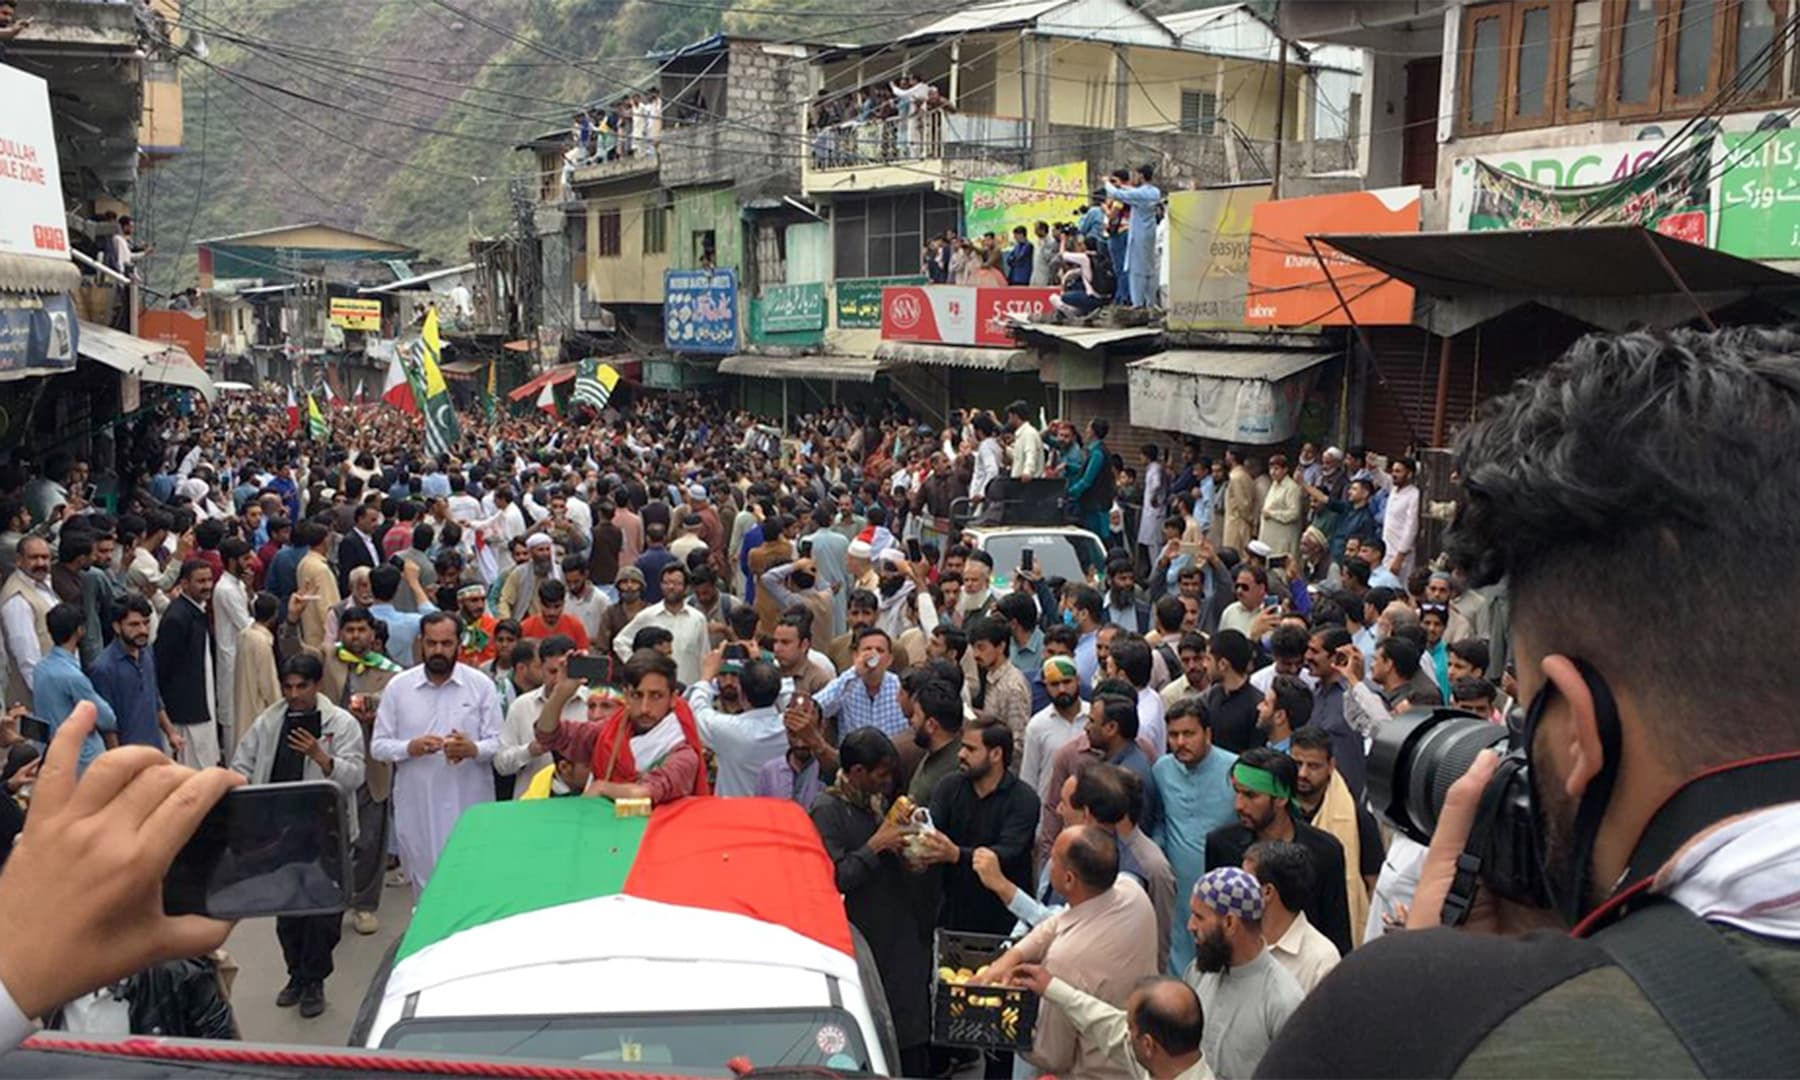 The caravan being welcomed in Hattian Bala. — Photo by author